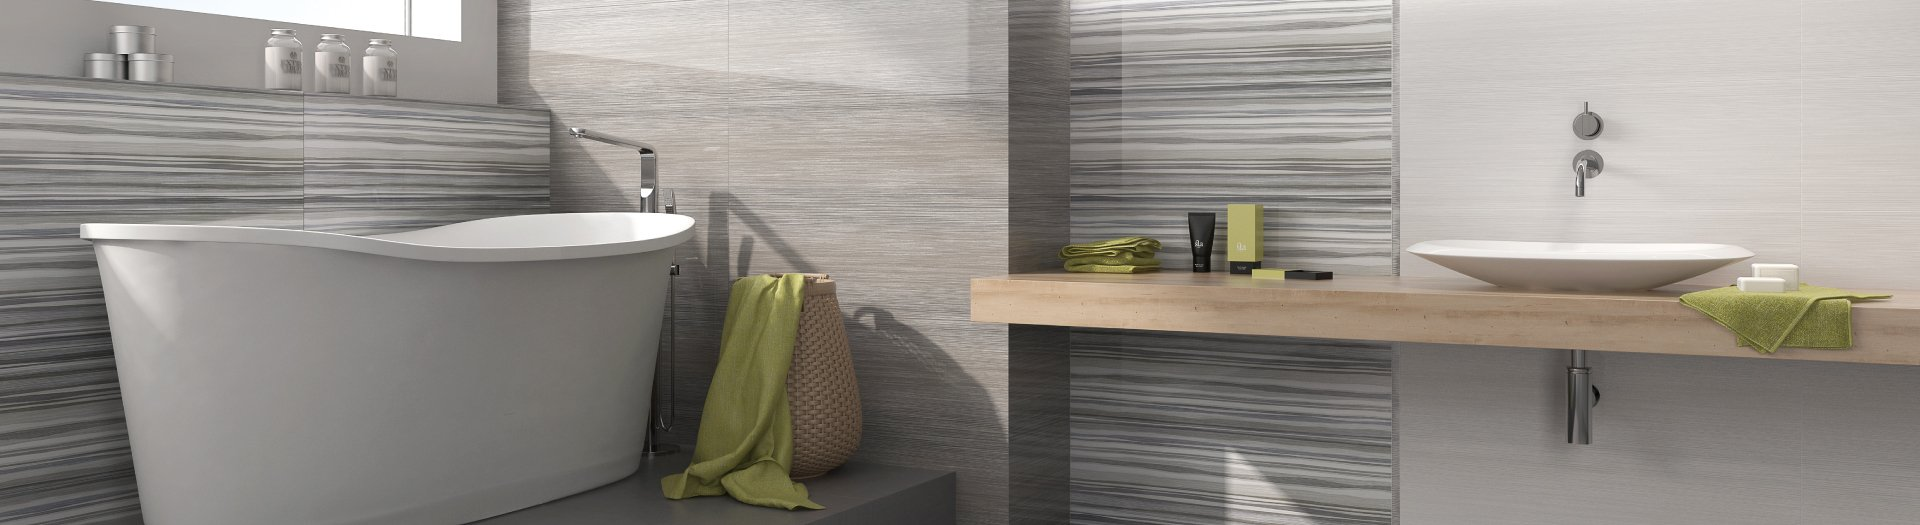 Fullsize Of Bedrosians Tile And Stone